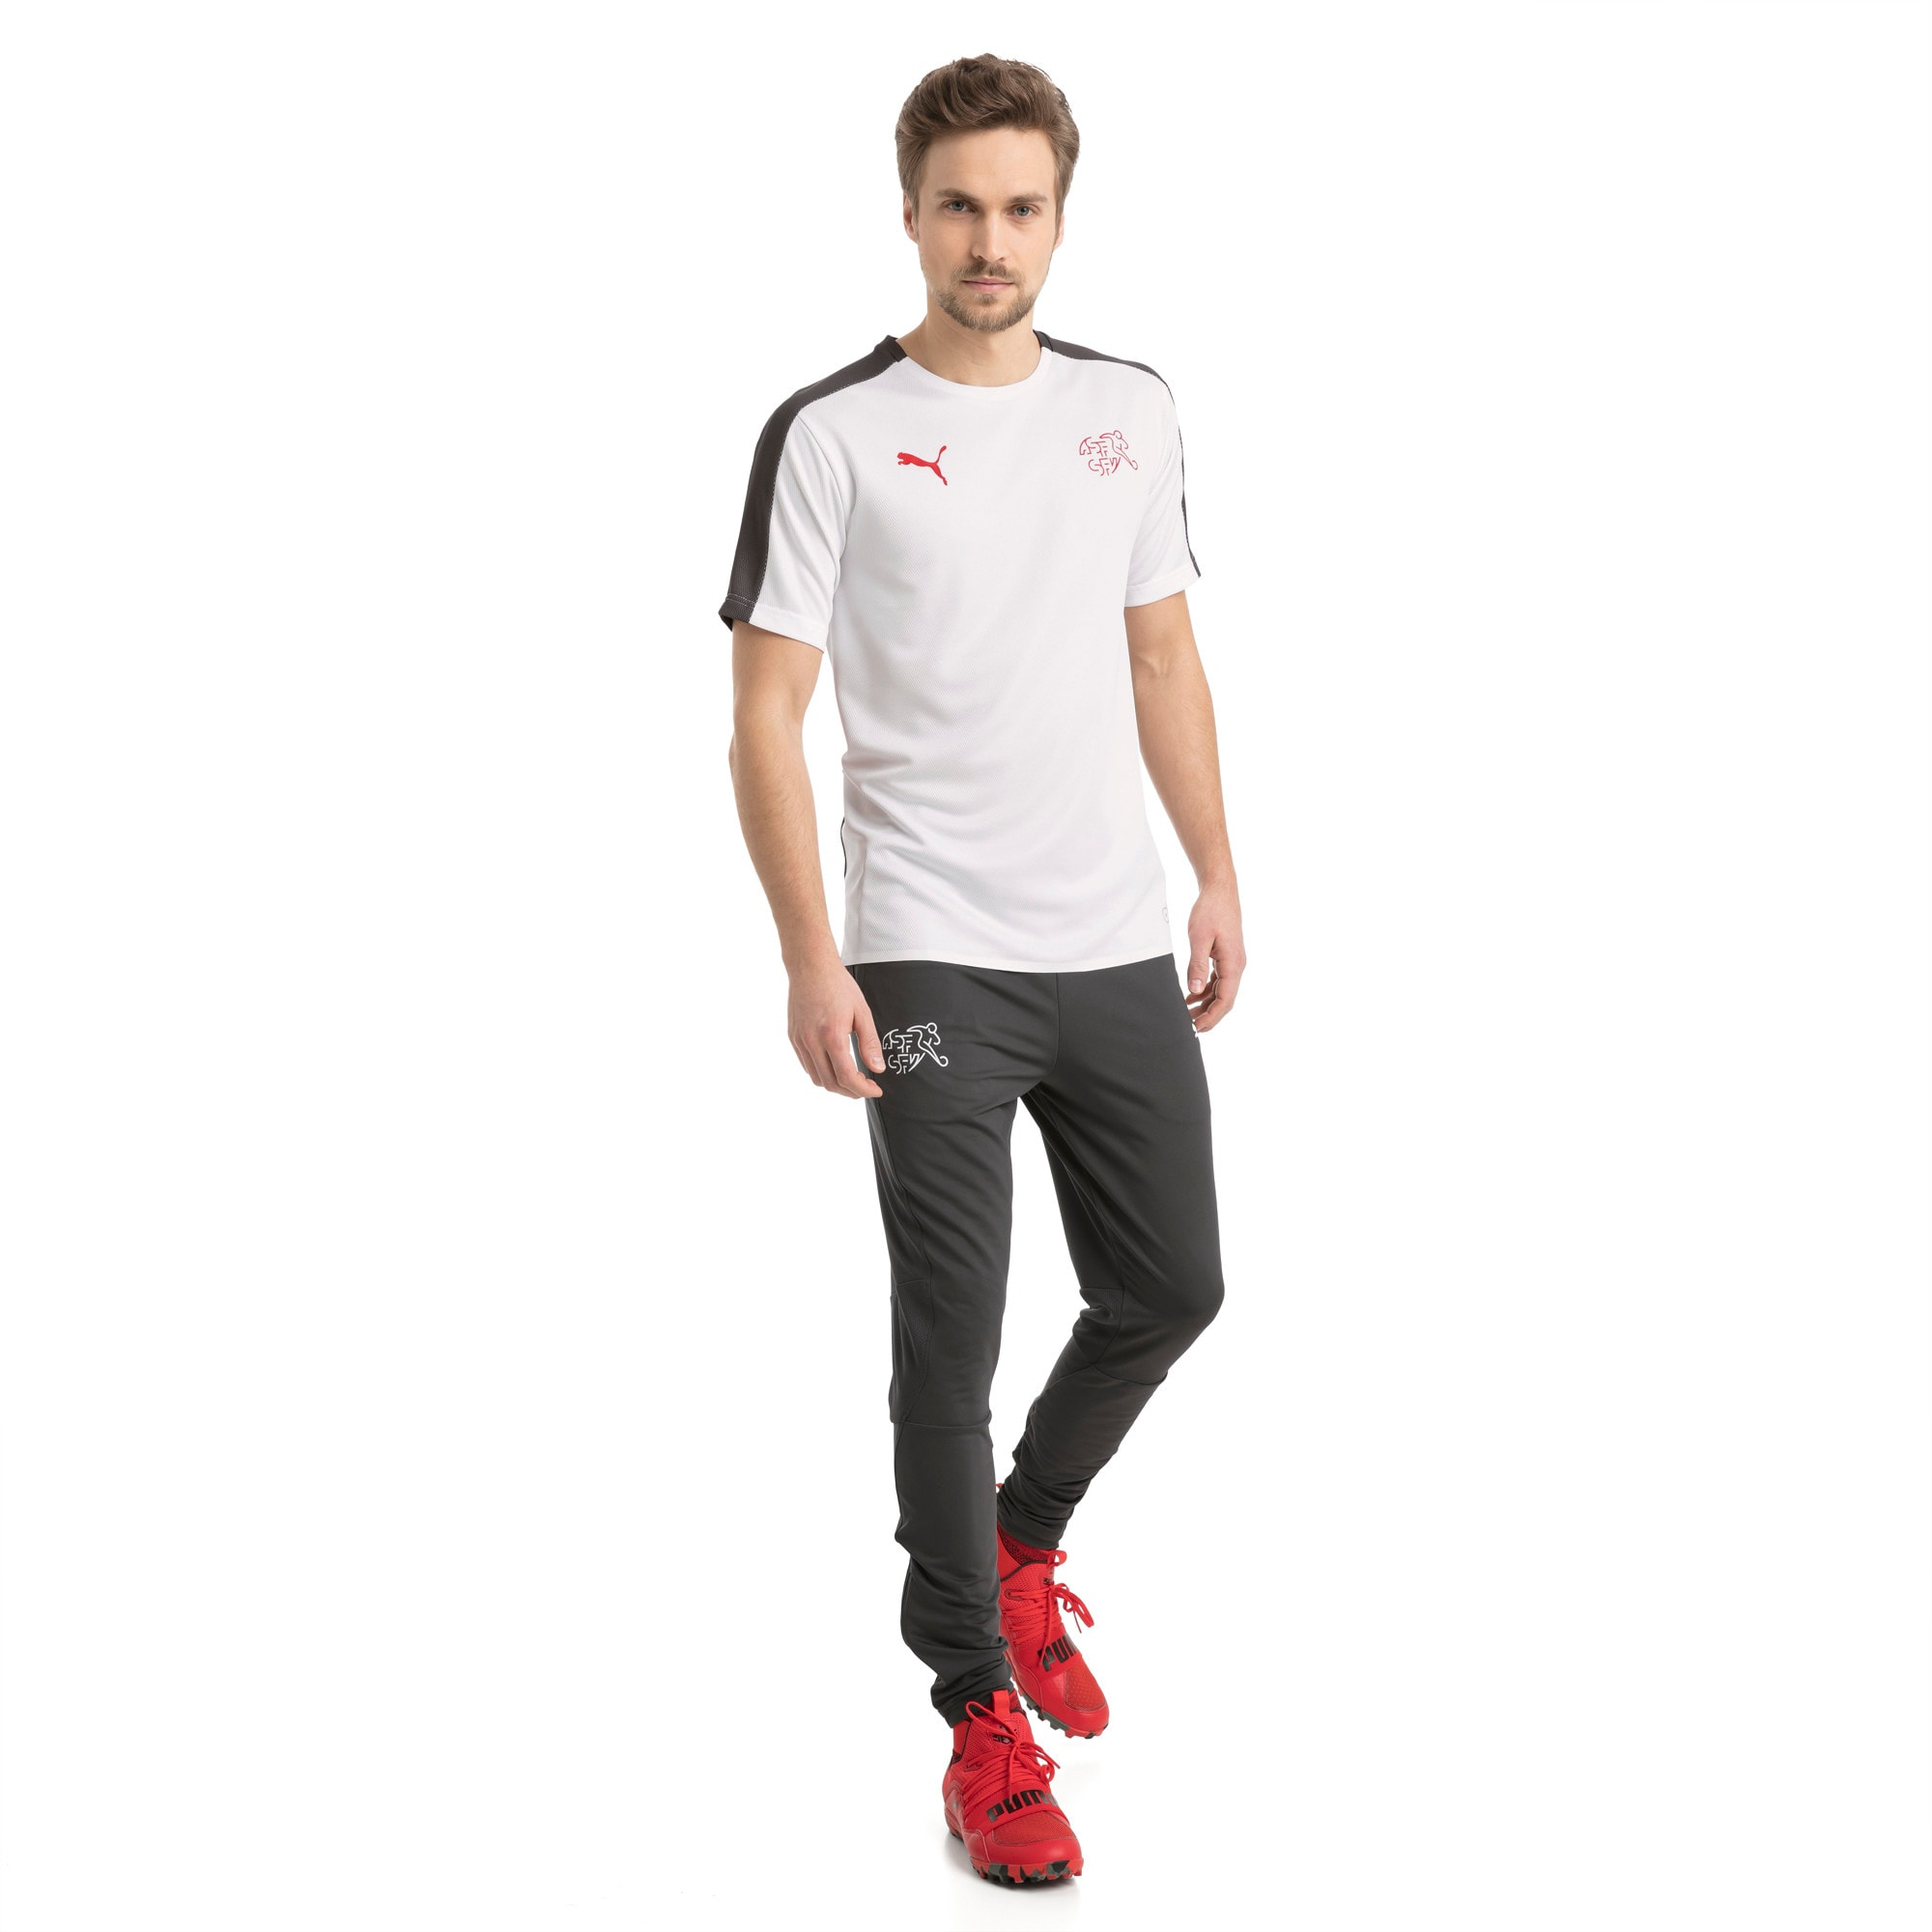 Thumbnail 5 of SUISSE Stadium Jersey, Puma White-Asphalt, medium